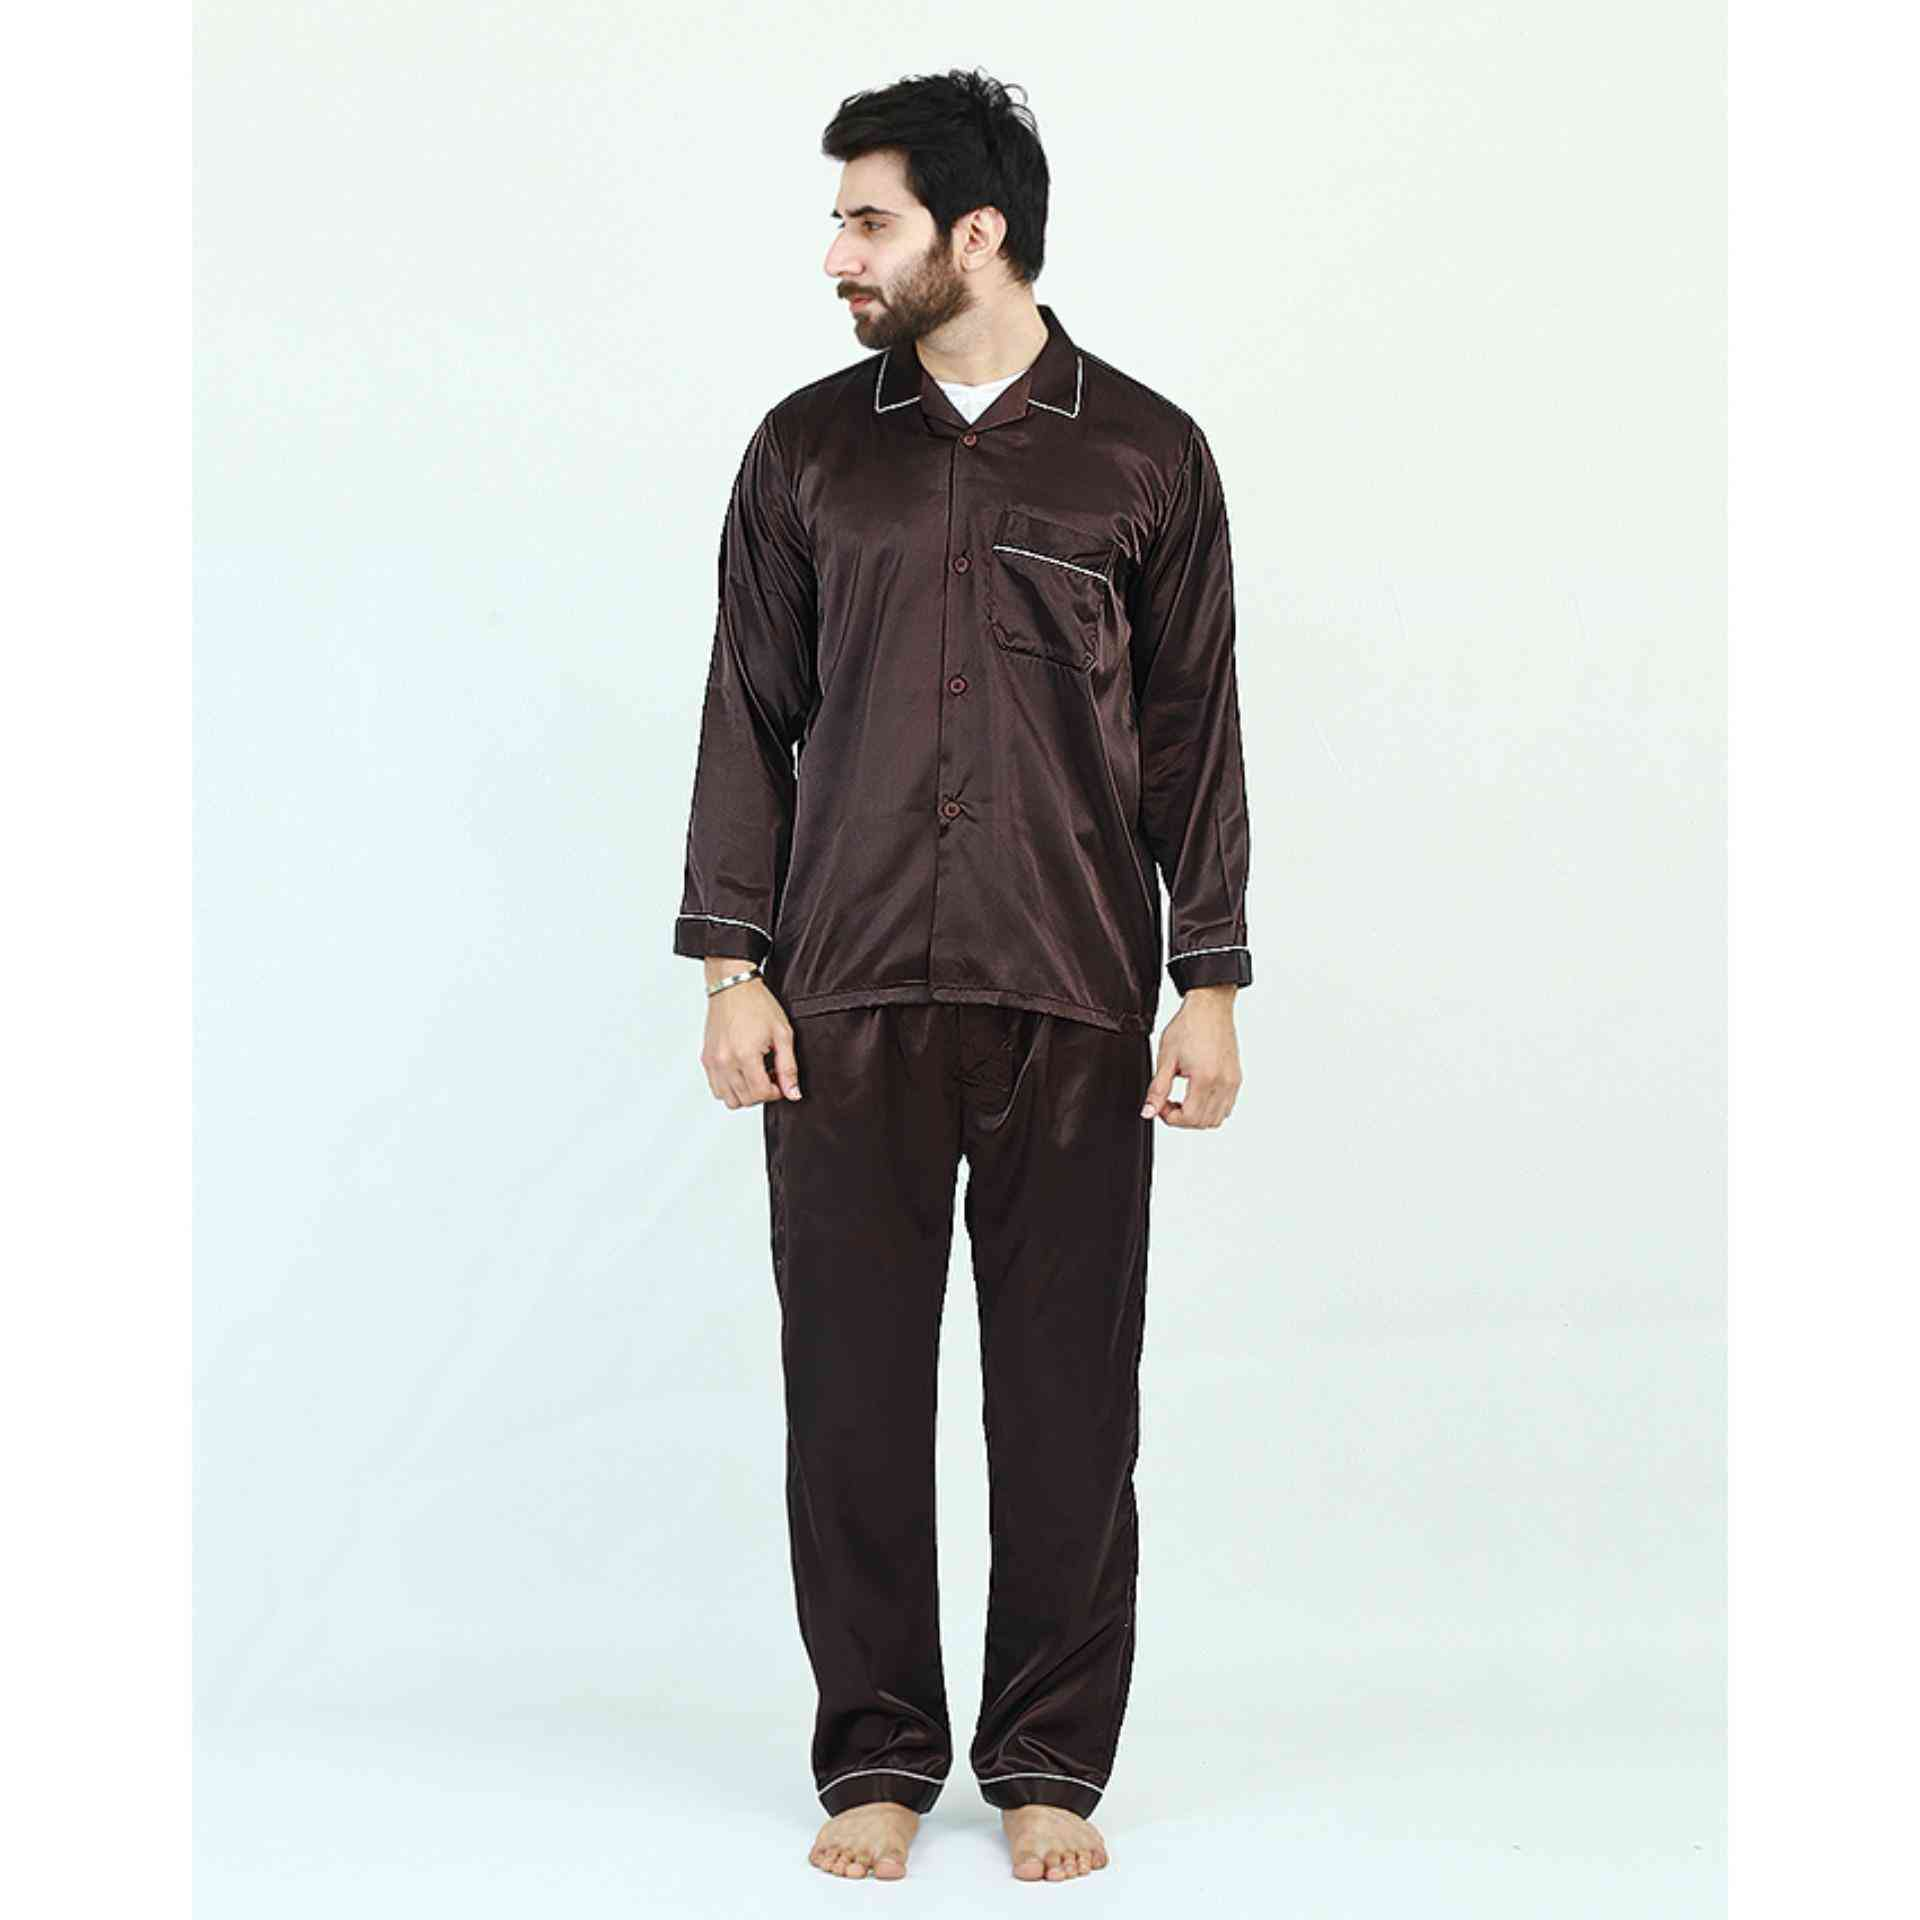 Pack of 2 Satin Silk Night Suit (Pajama + Shirt) for Men - Brown